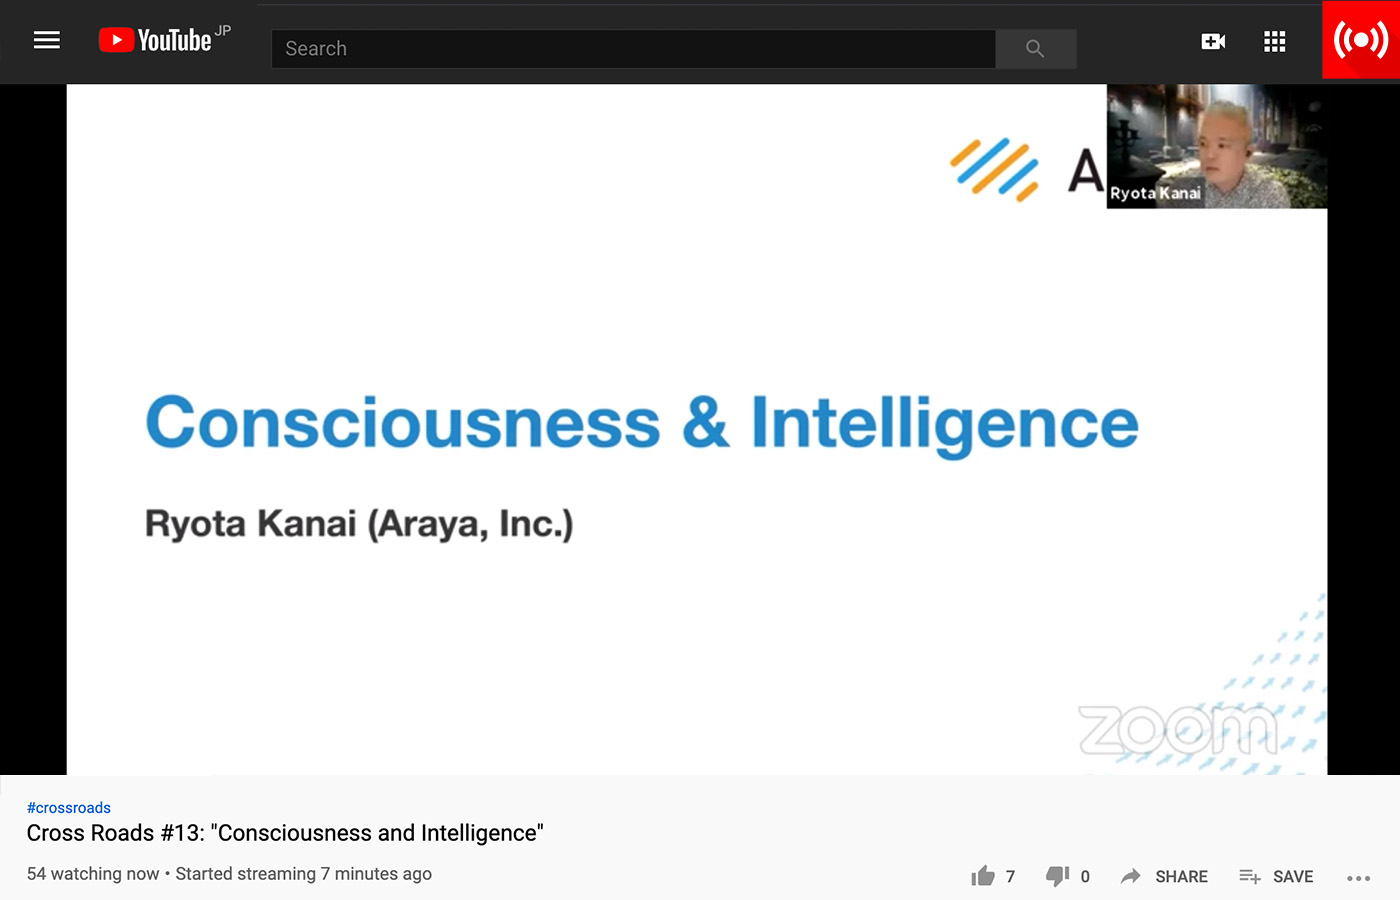 Dr. Ryota Kanai presents via YouTube Live